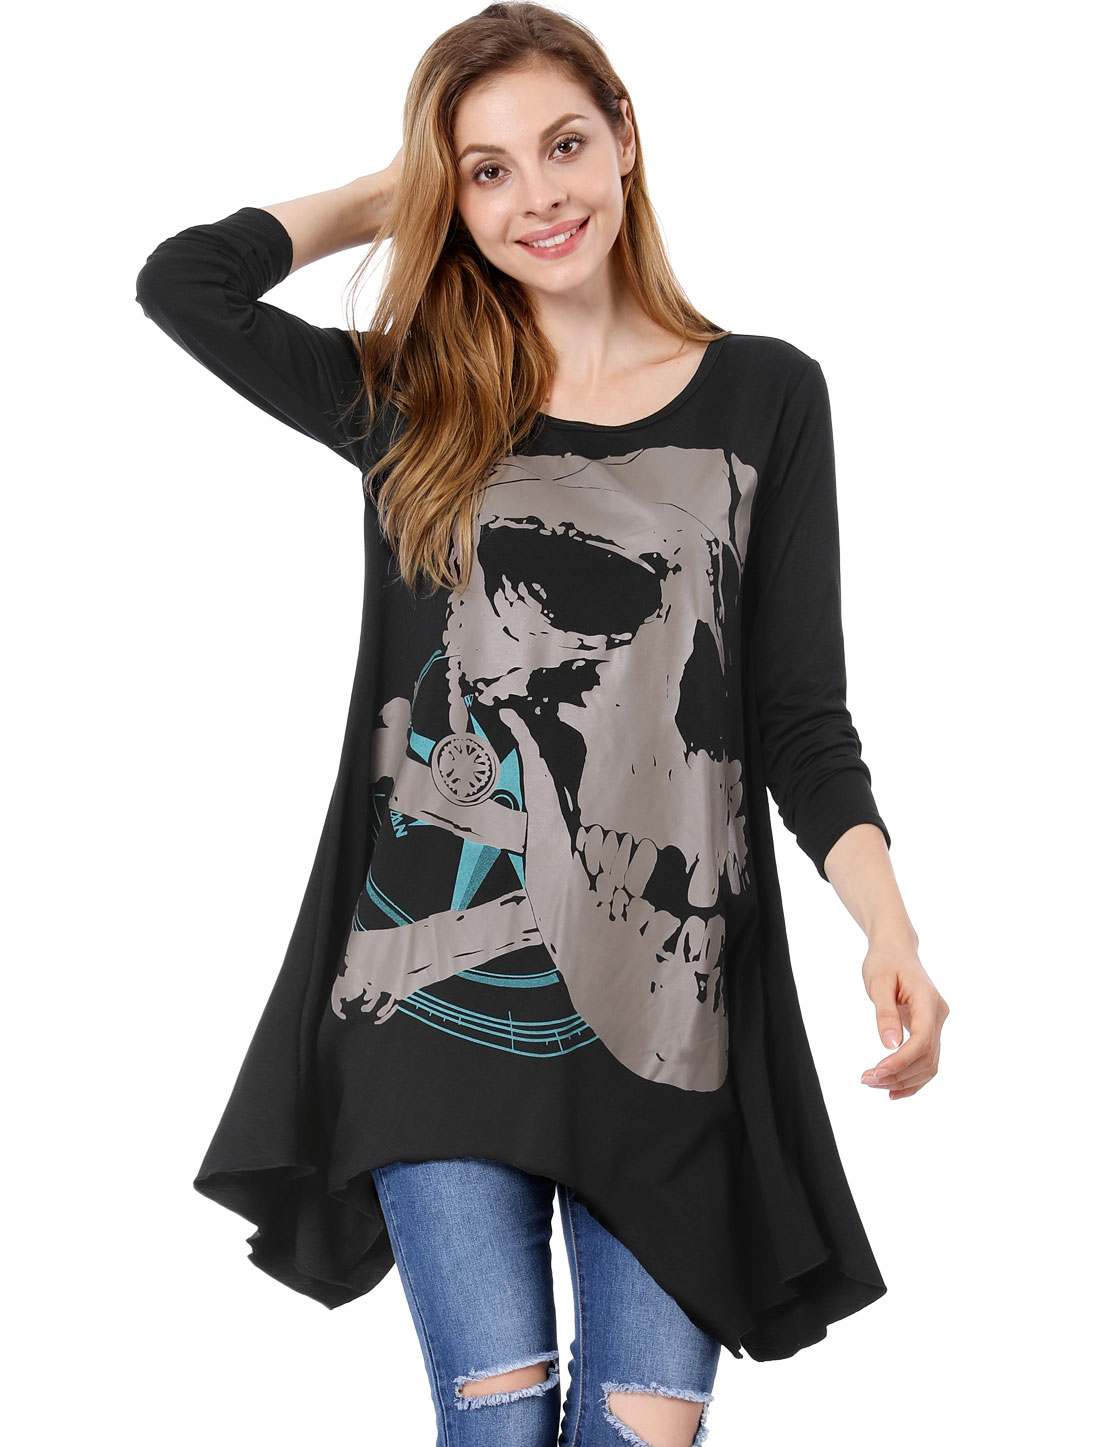 Woman Chic Round Neck Long-Sleeved Black Tunic Top Shirt XS